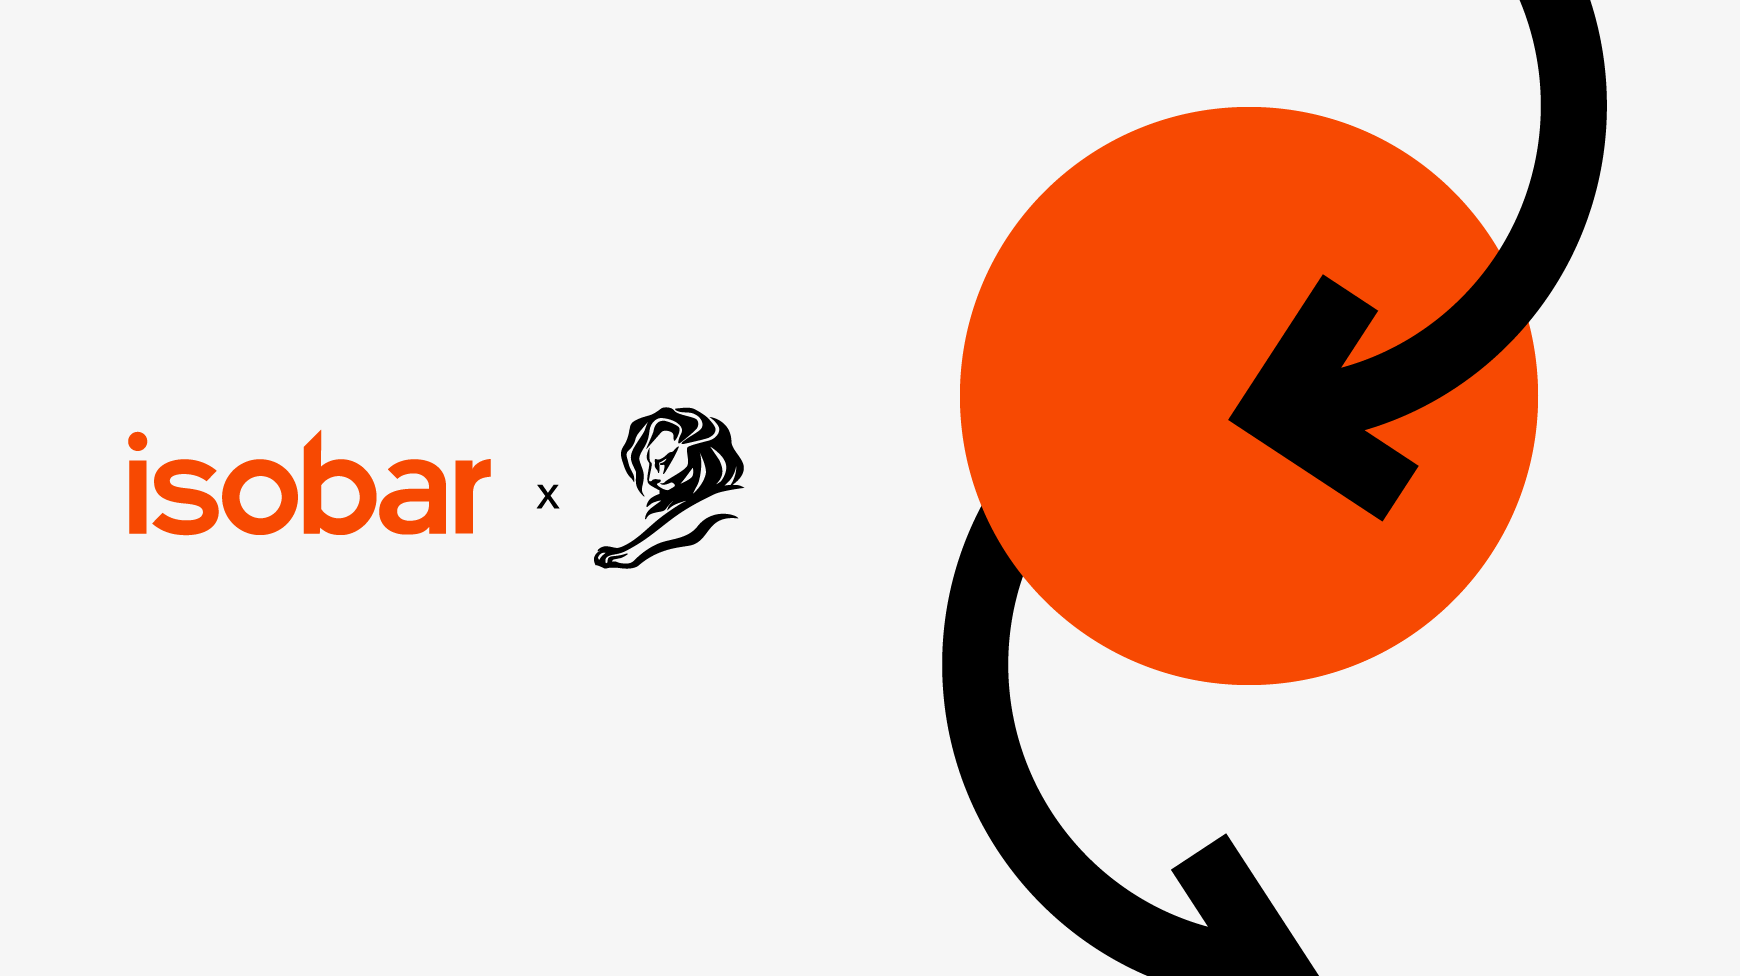 What to expect from Isobar at Cannes 2019